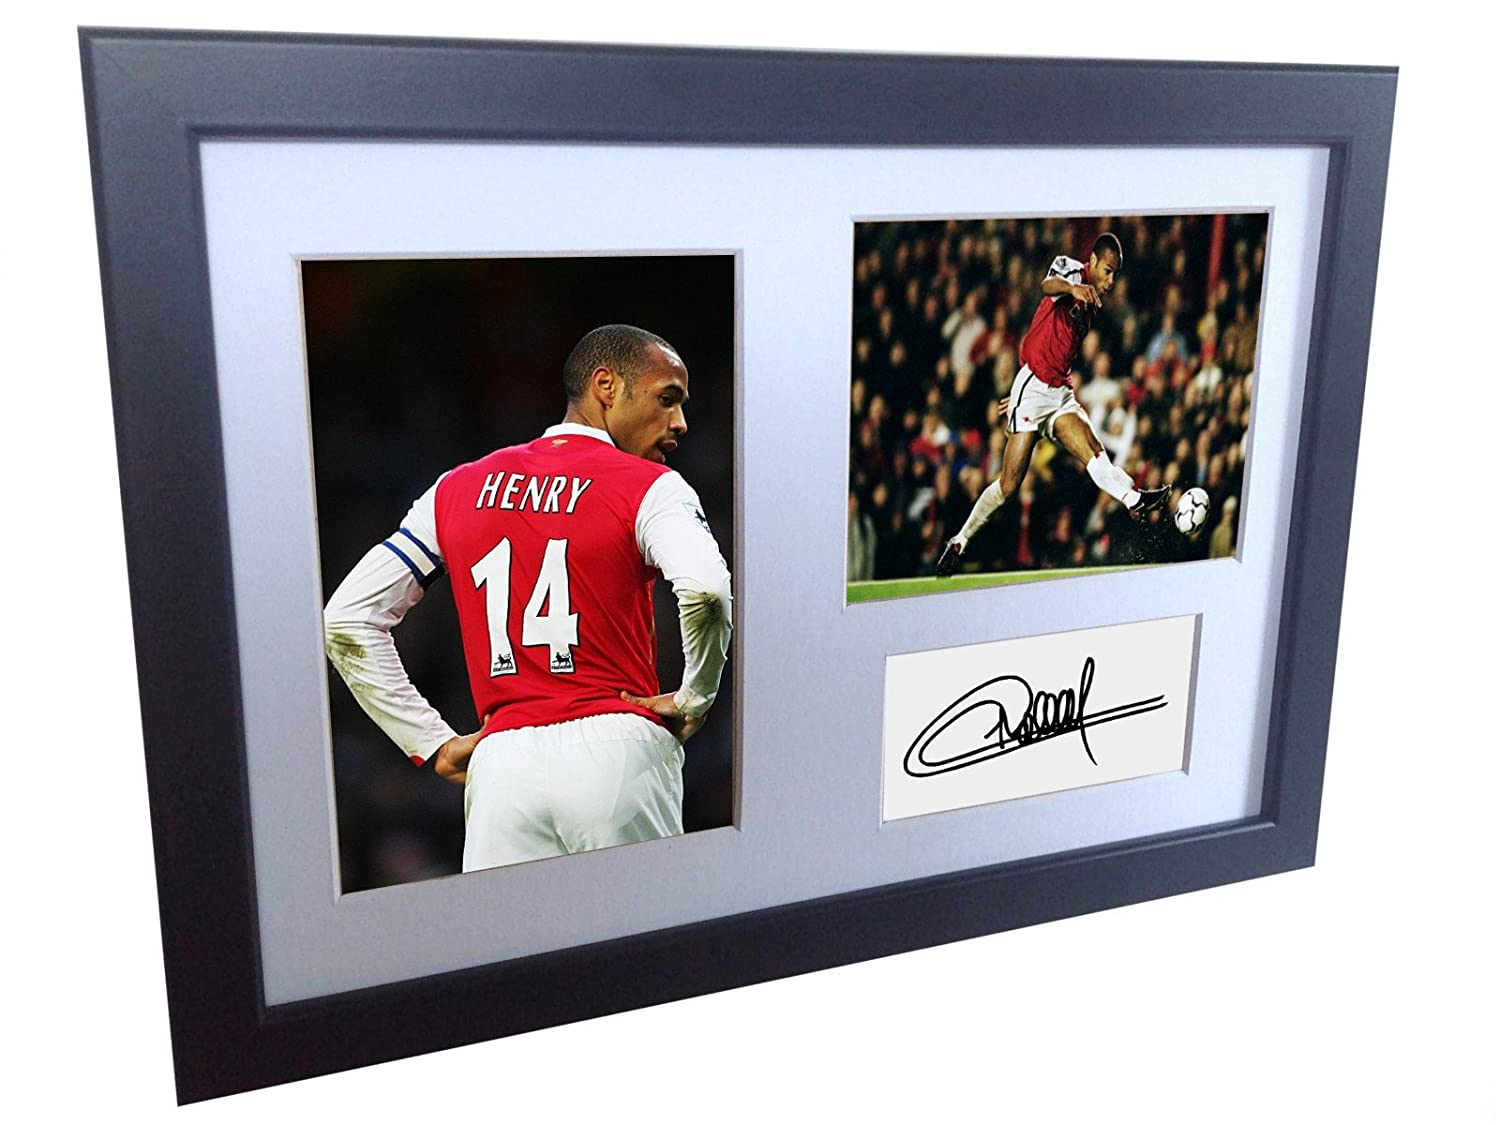 Amazon signed black soccer thierry henry arsenal autographed amazon signed black soccer thierry henry arsenal autographed photo photographed picture frame a4 12x8 football gift kitchen dining jeuxipadfo Choice Image